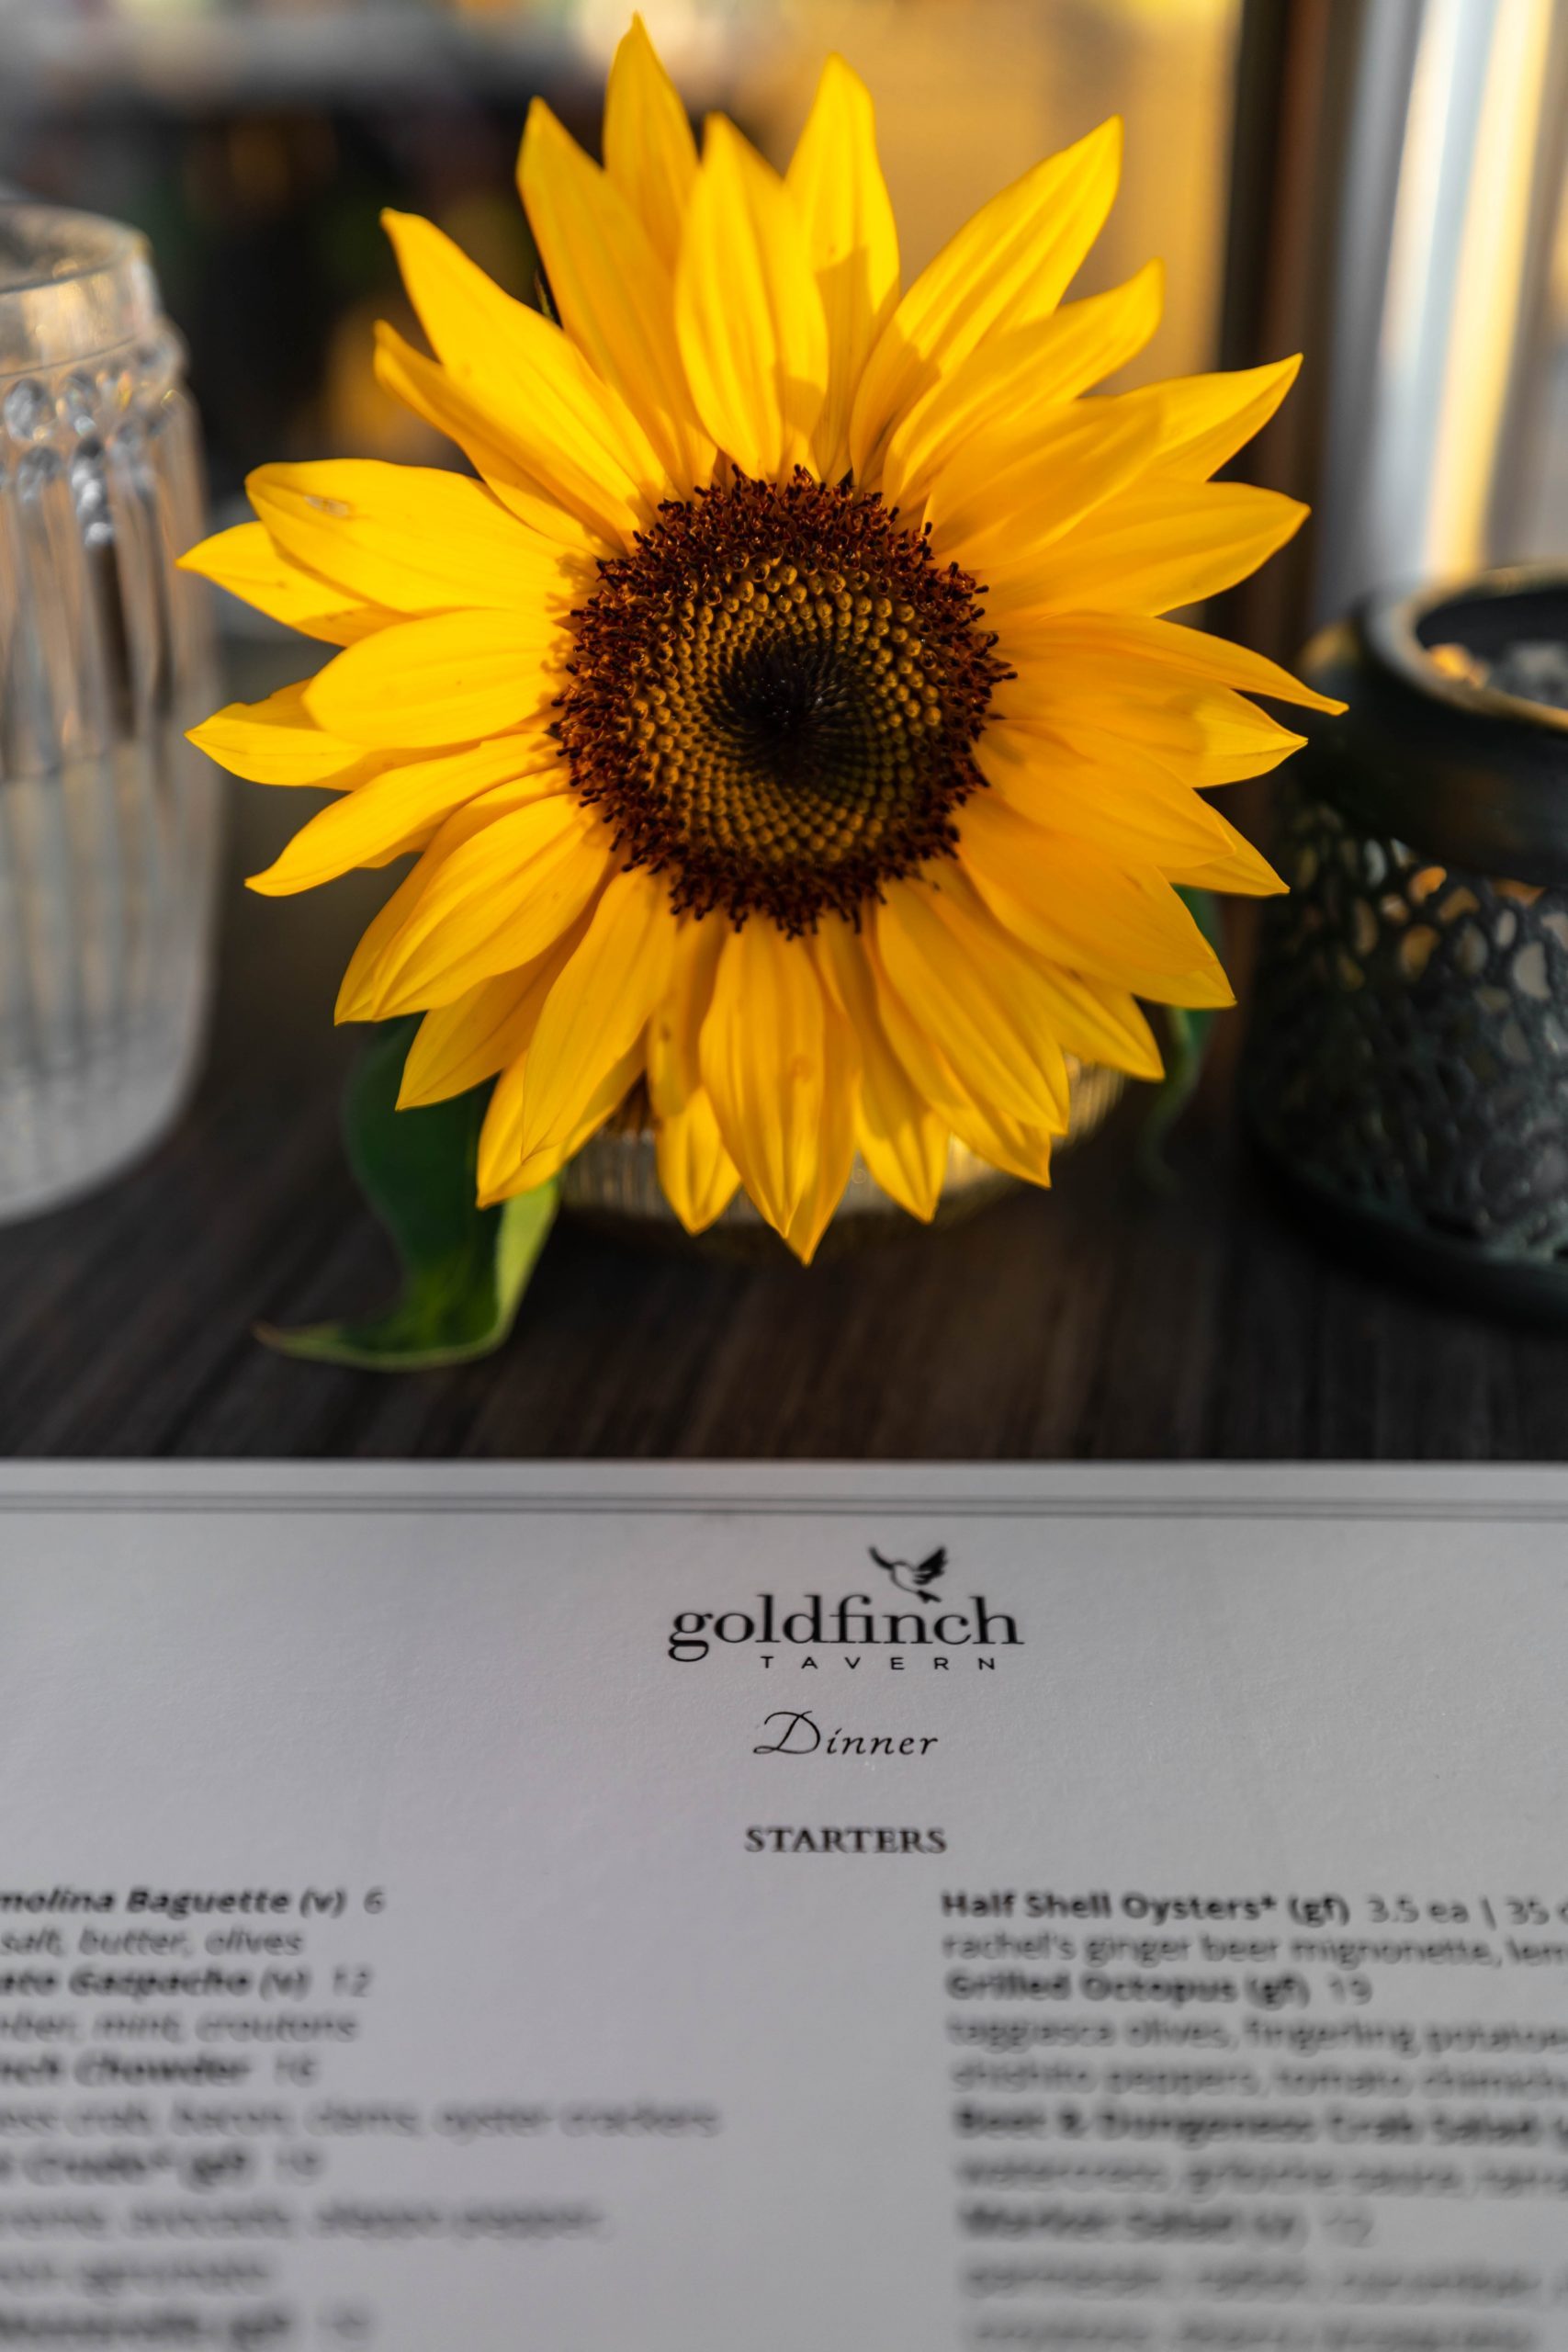 Goldfinch Tavern Rooftop Dining at Four Seasons Hotel Seattle Menu and Sunflower by Annie Fairfax